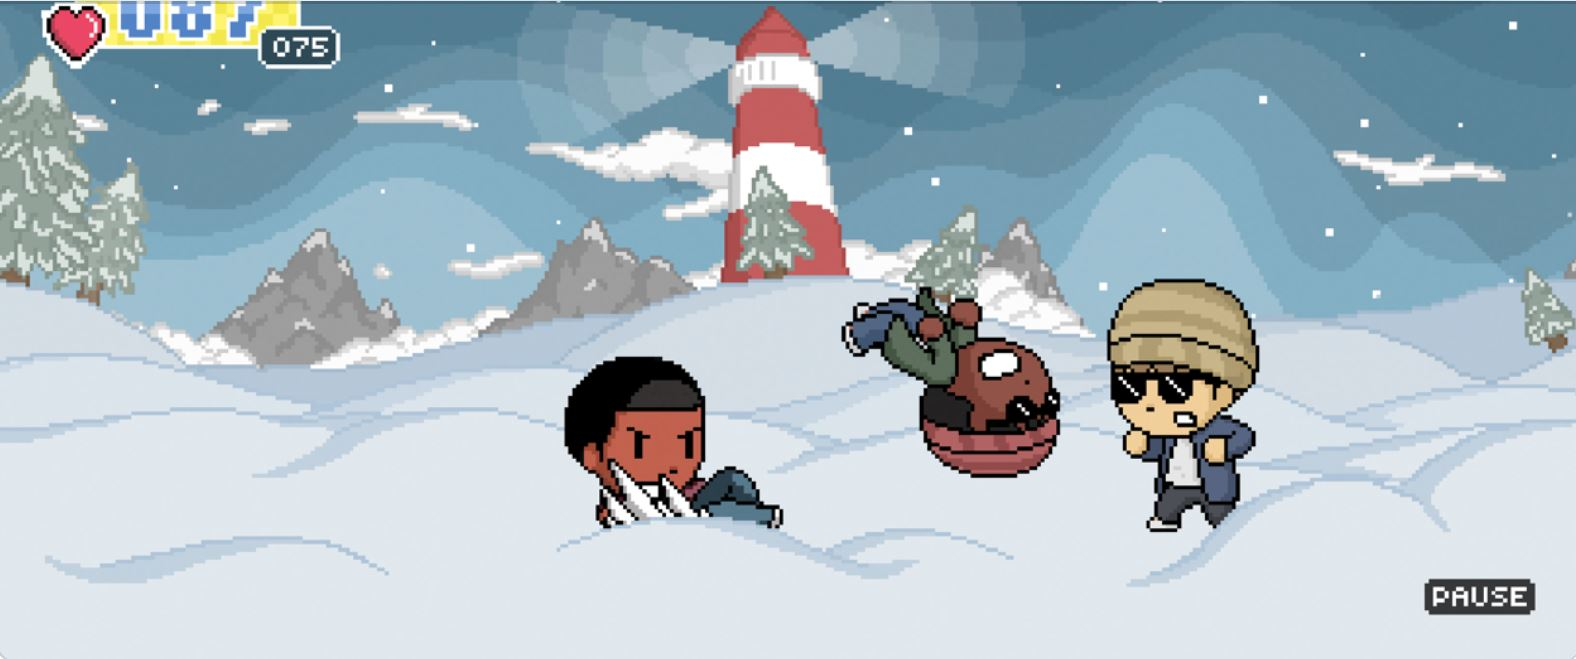 Adventures of Kidd: Three things to know about the retro brawler